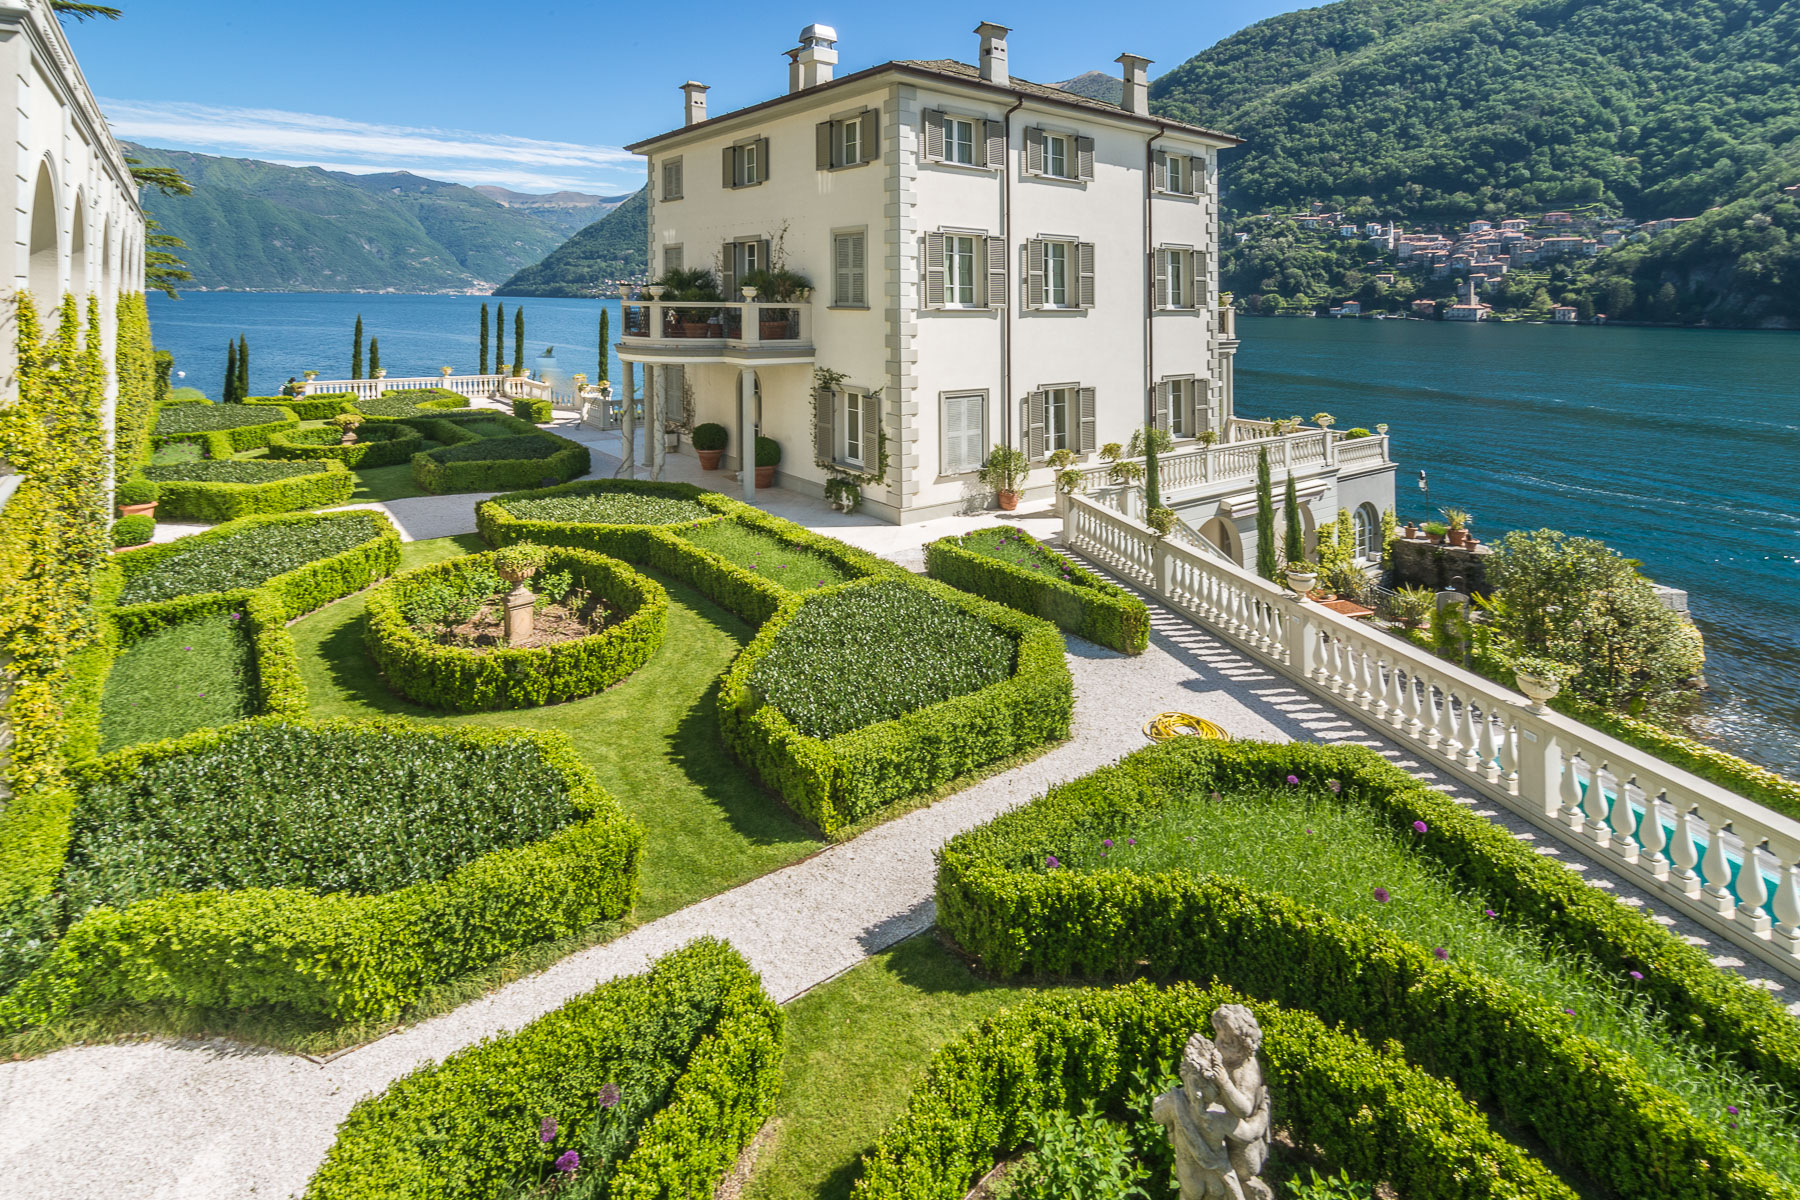 Property для того Продажа на Gorgeous lakefront trophy estate Laglio, Como Италия